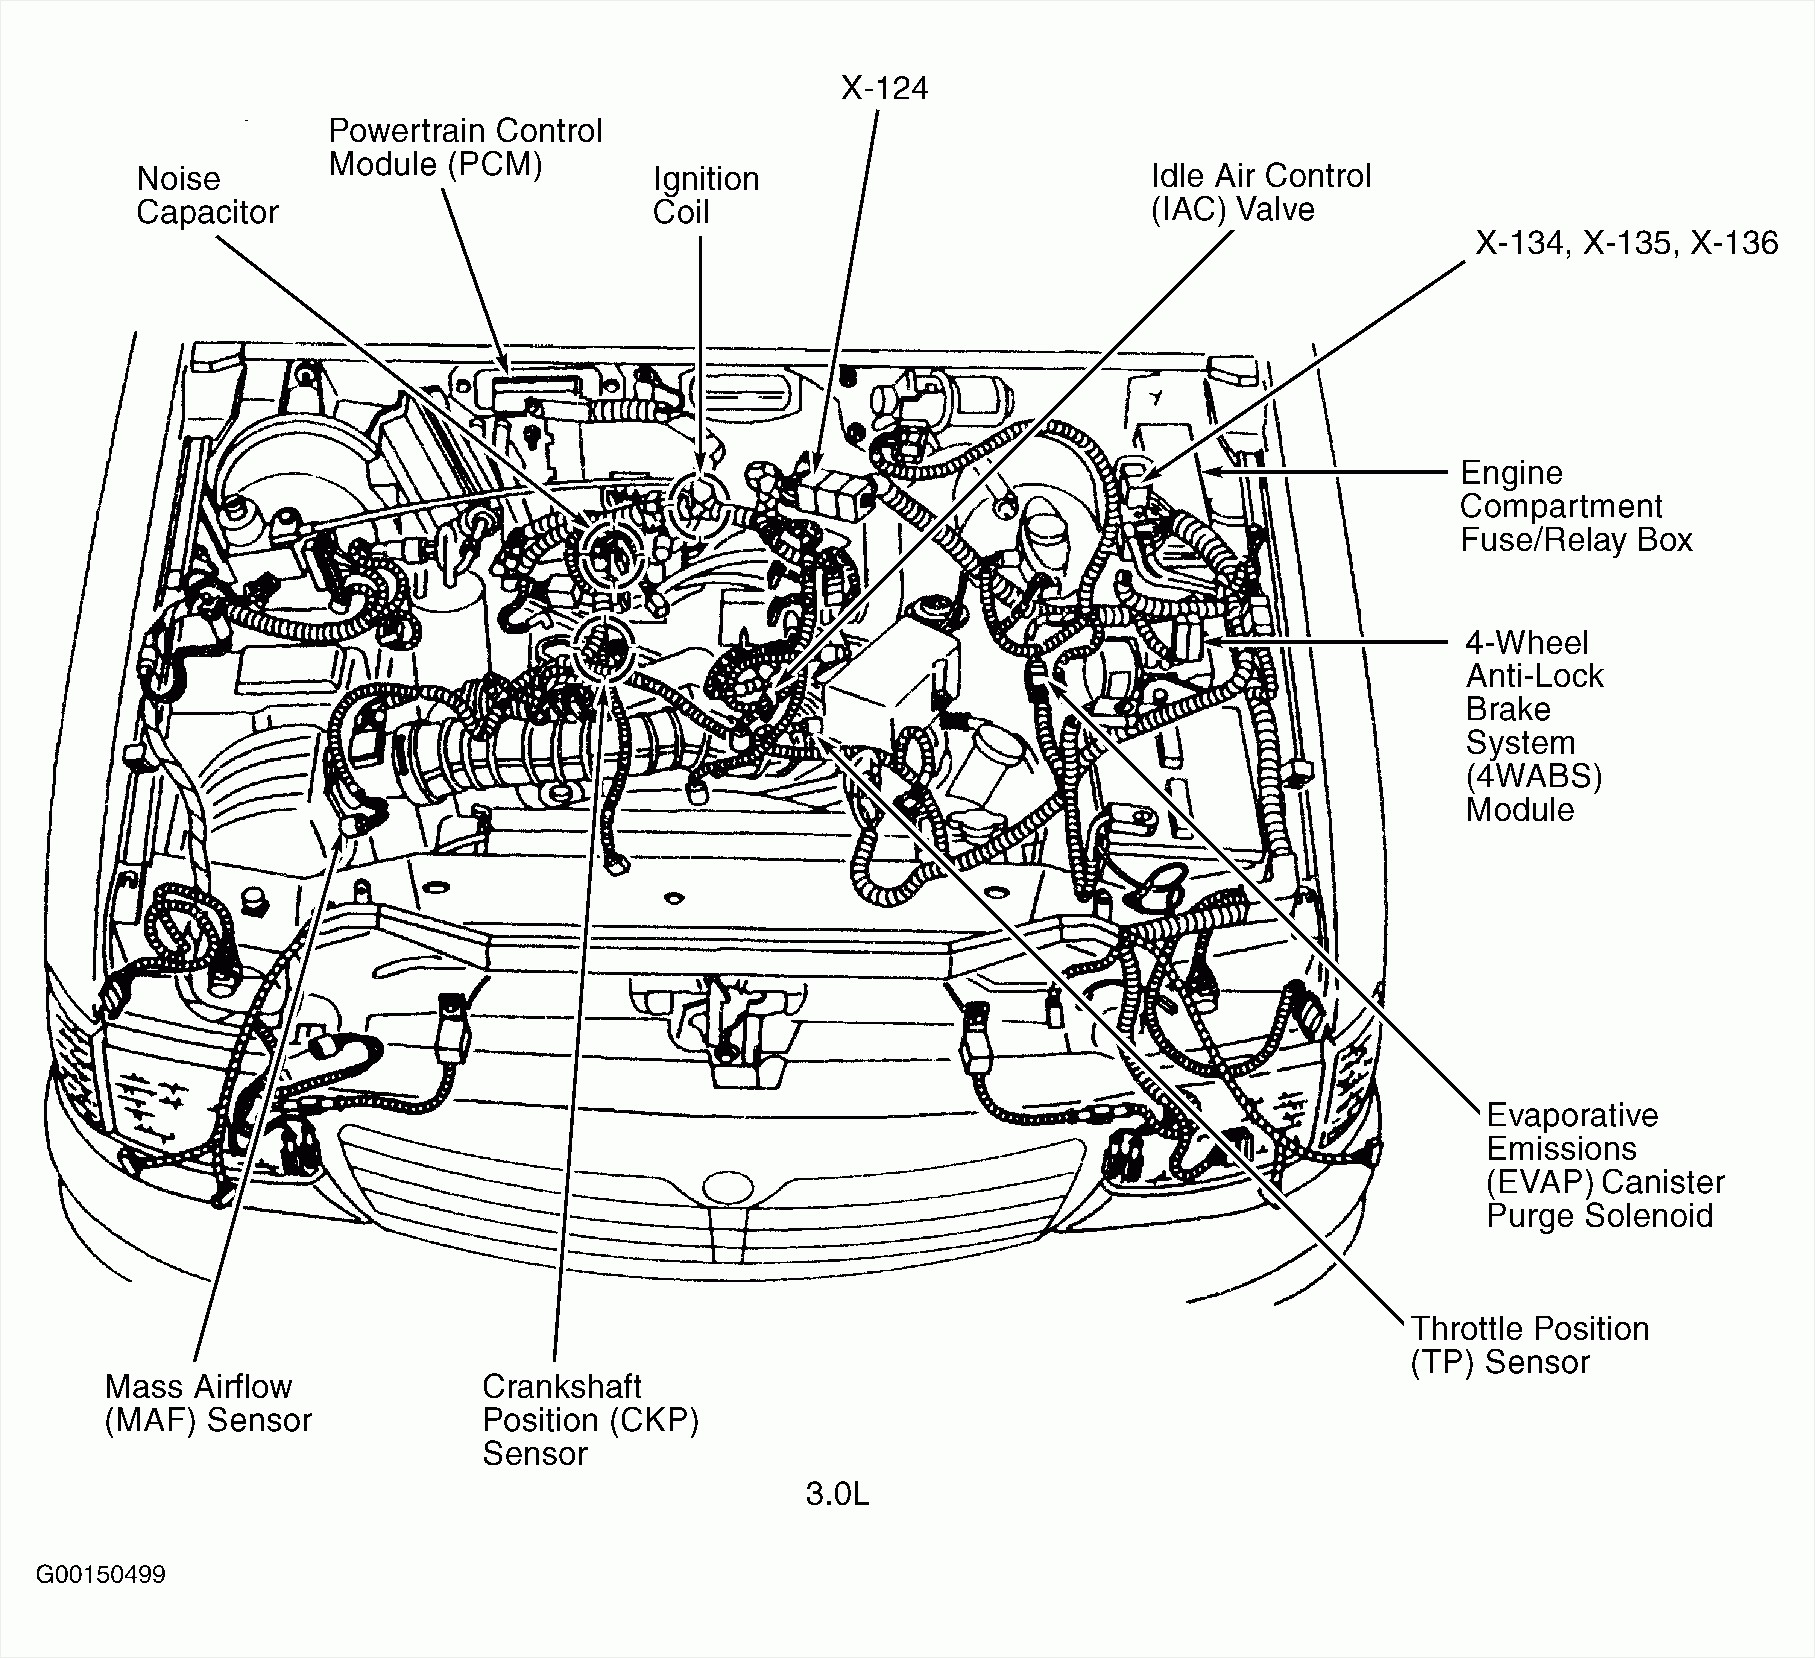 Toyota 3 0 V6 Engine Wiring Diagram on 1995 ford taurus water pump